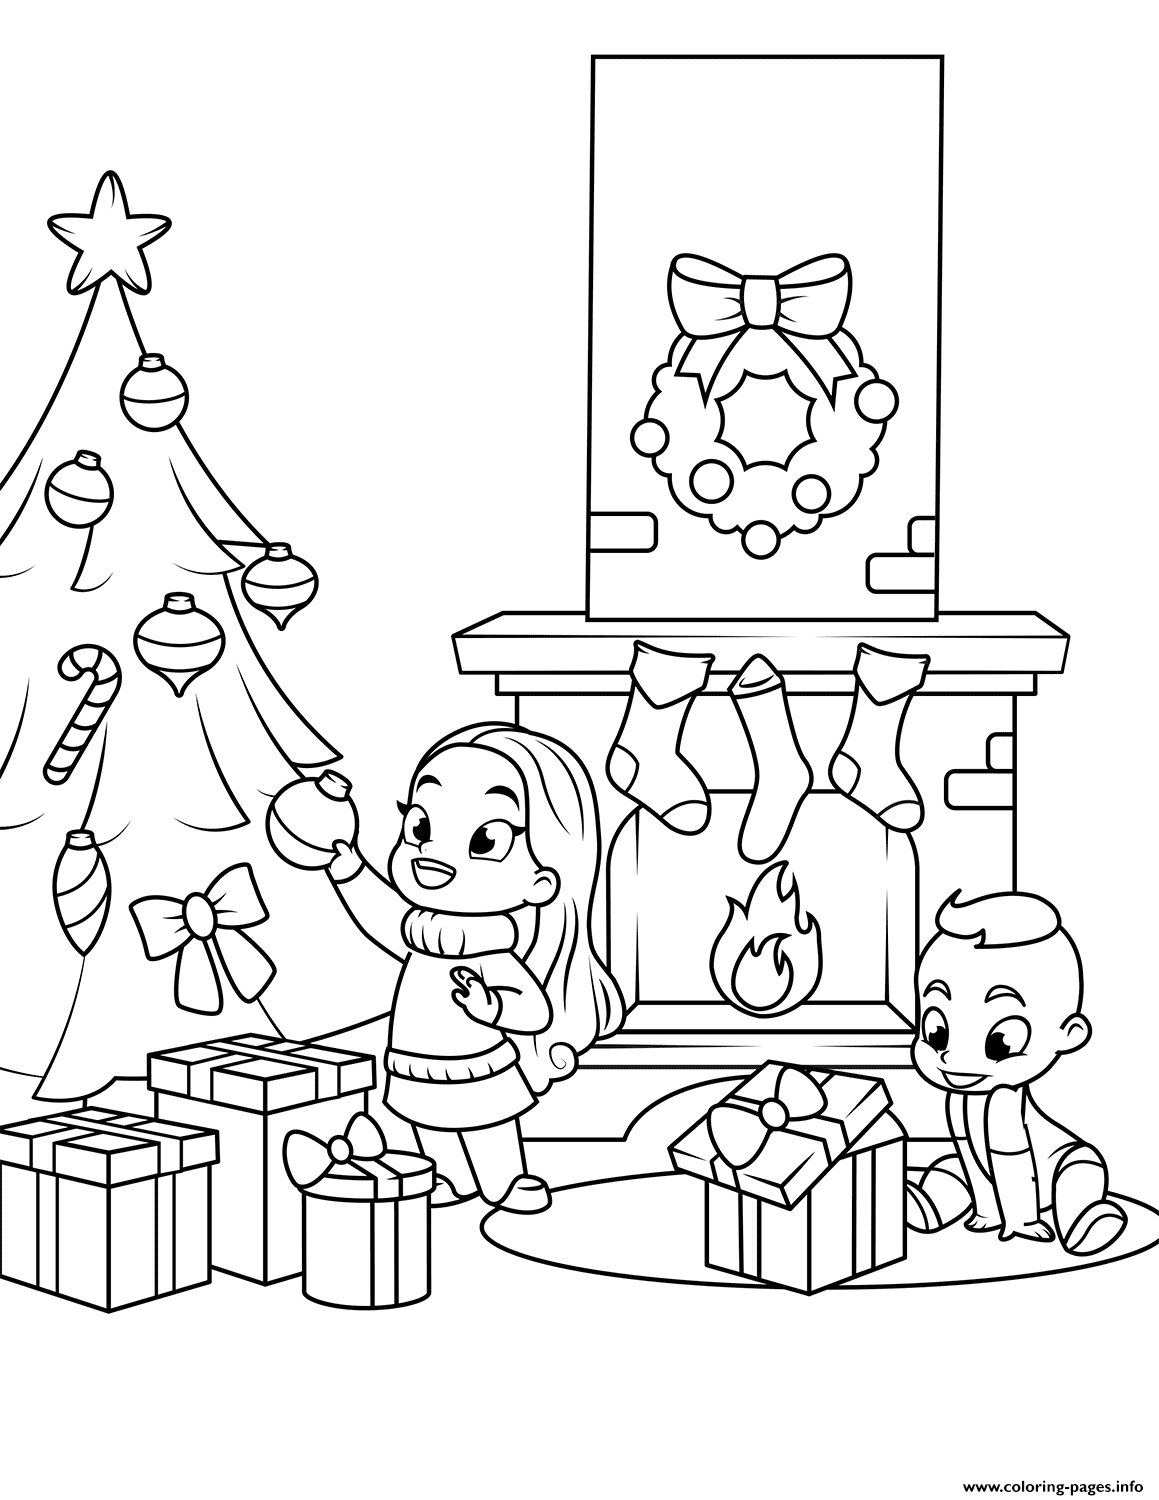 Kids Near The Fireplace And Christmas Tree Coloring Pages Printable